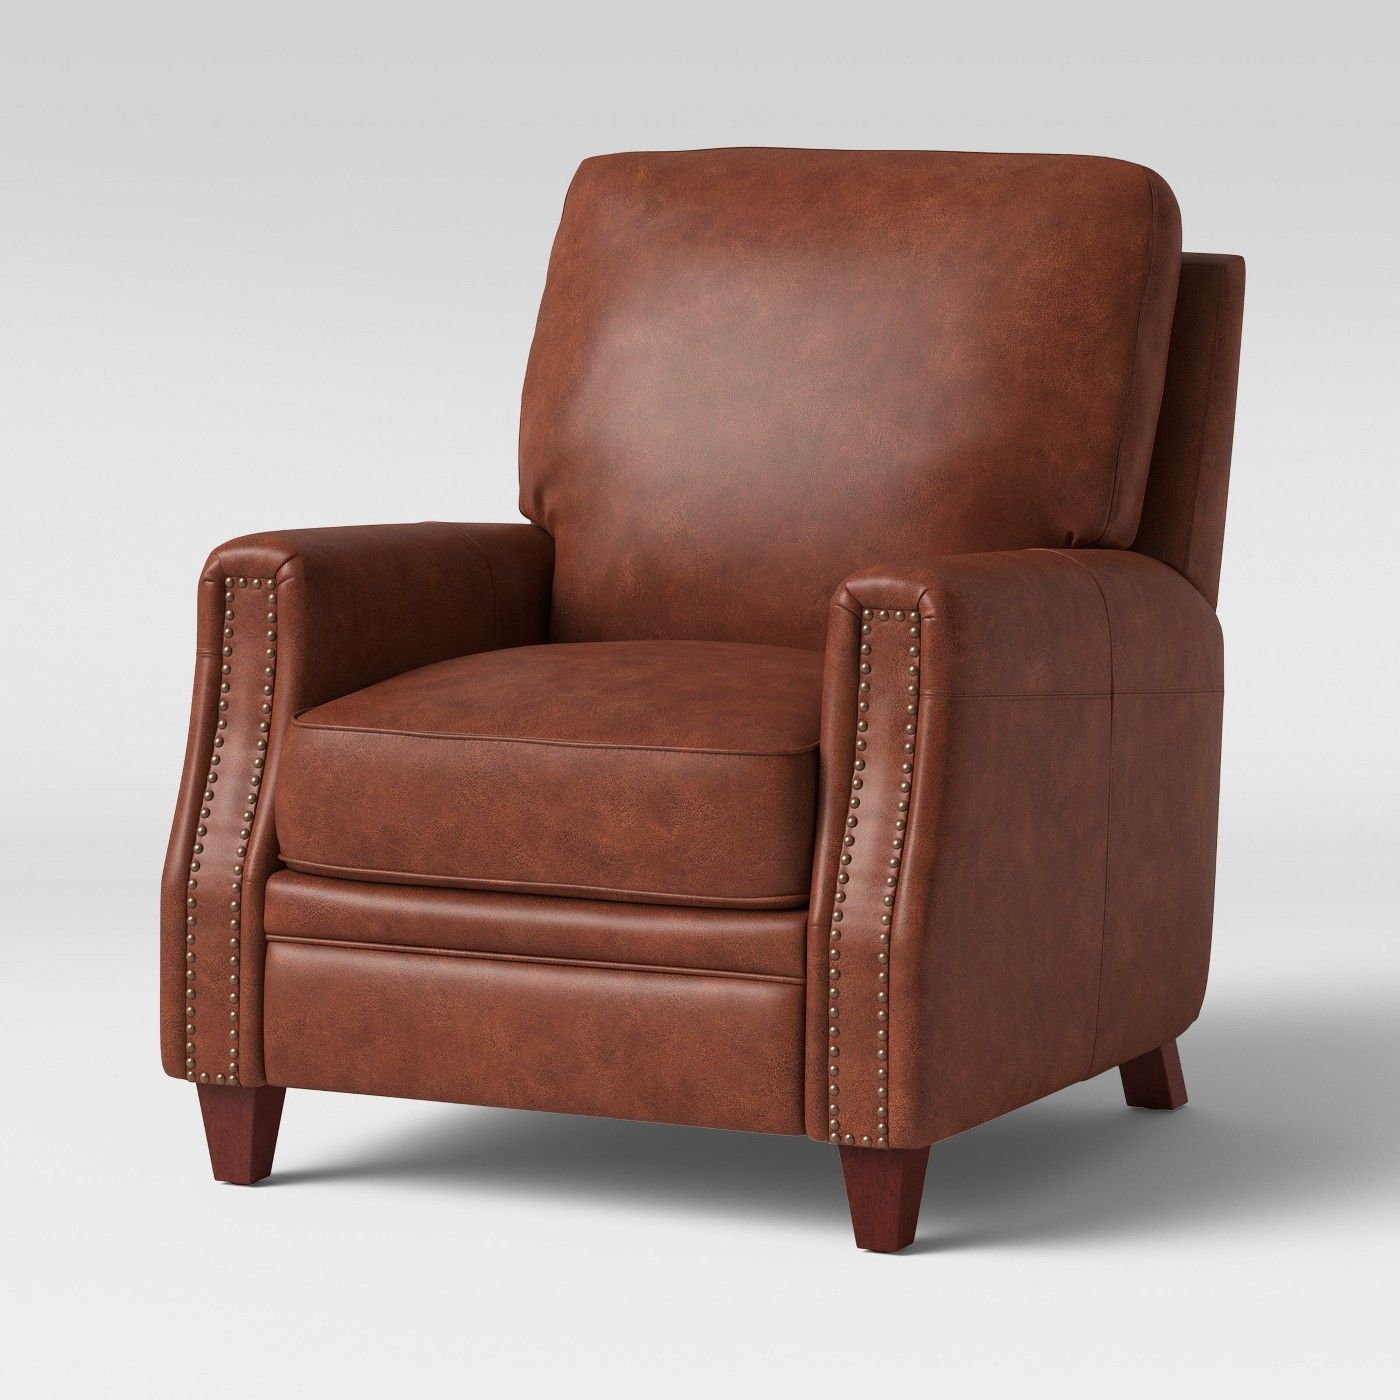 Best Bolton Pushback Recliner Threshold™ With Images 640 x 480